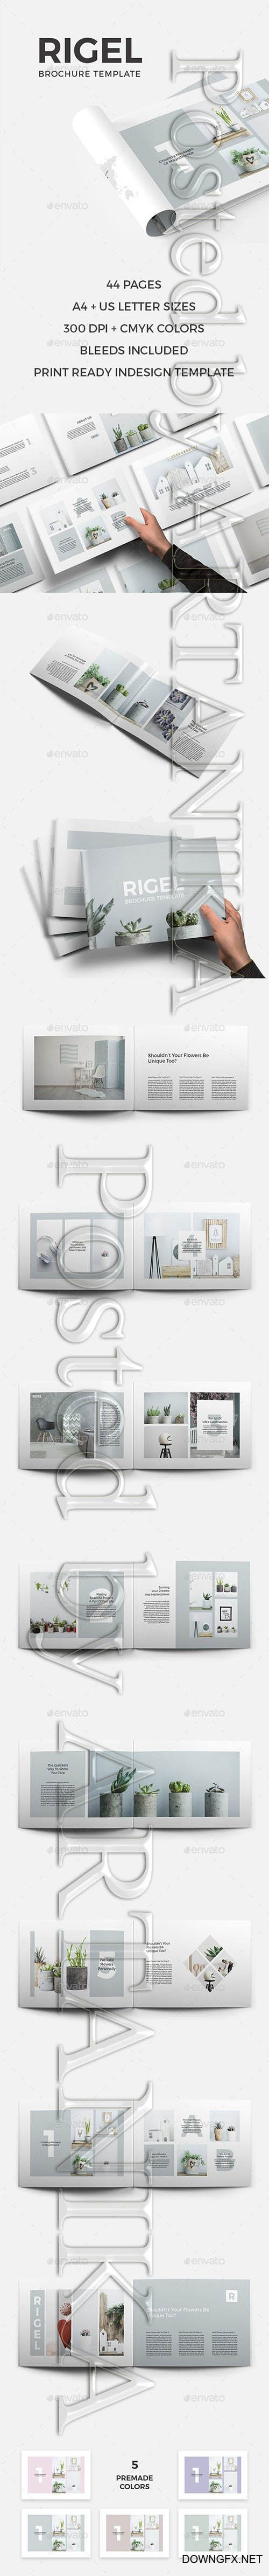 Graphicriver - Rigel Brochure Template 20080141